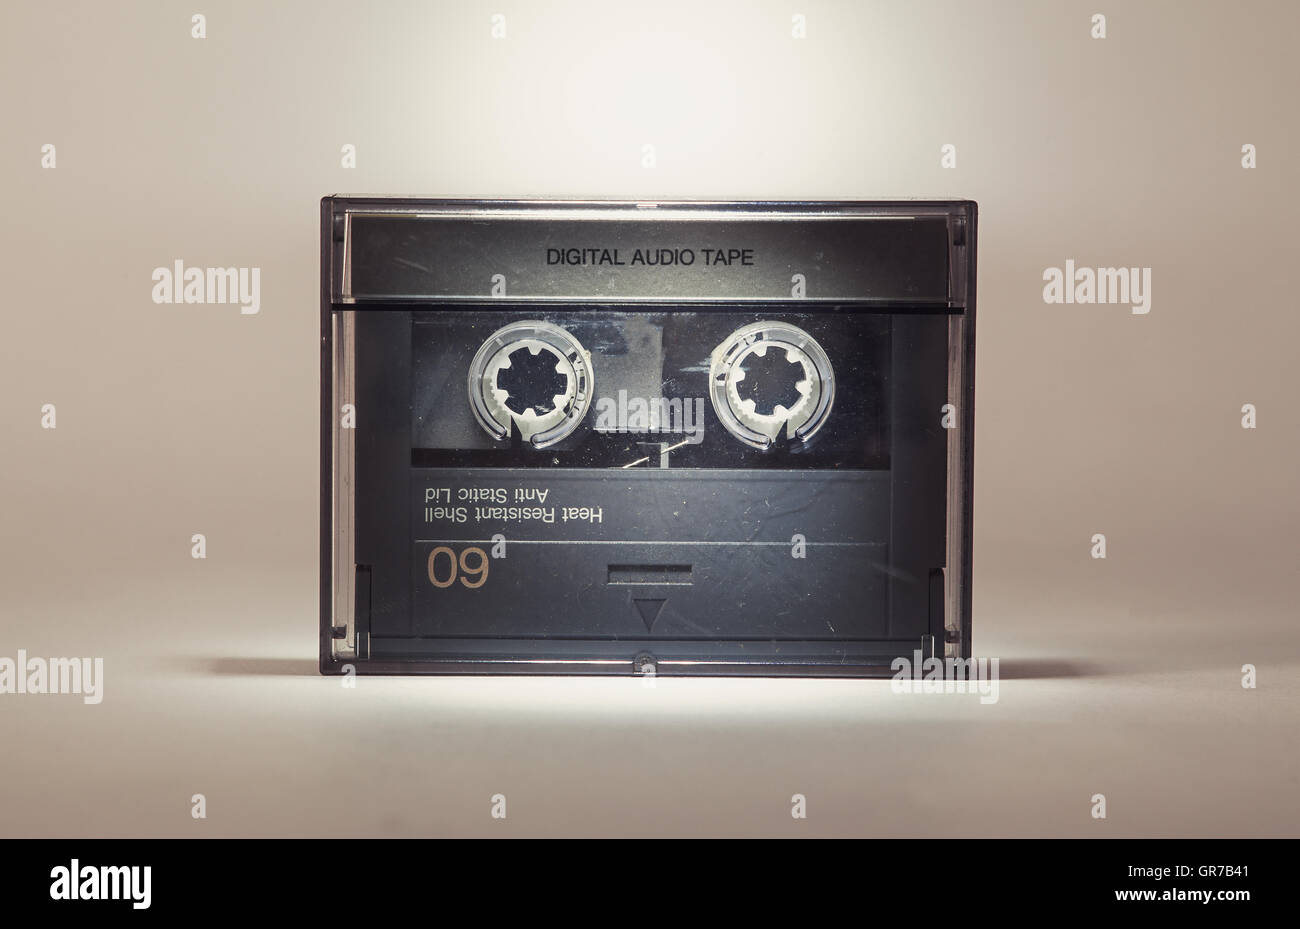 Details of an old dusty digital audio tape, retro technology from the 90's. - Stock Image